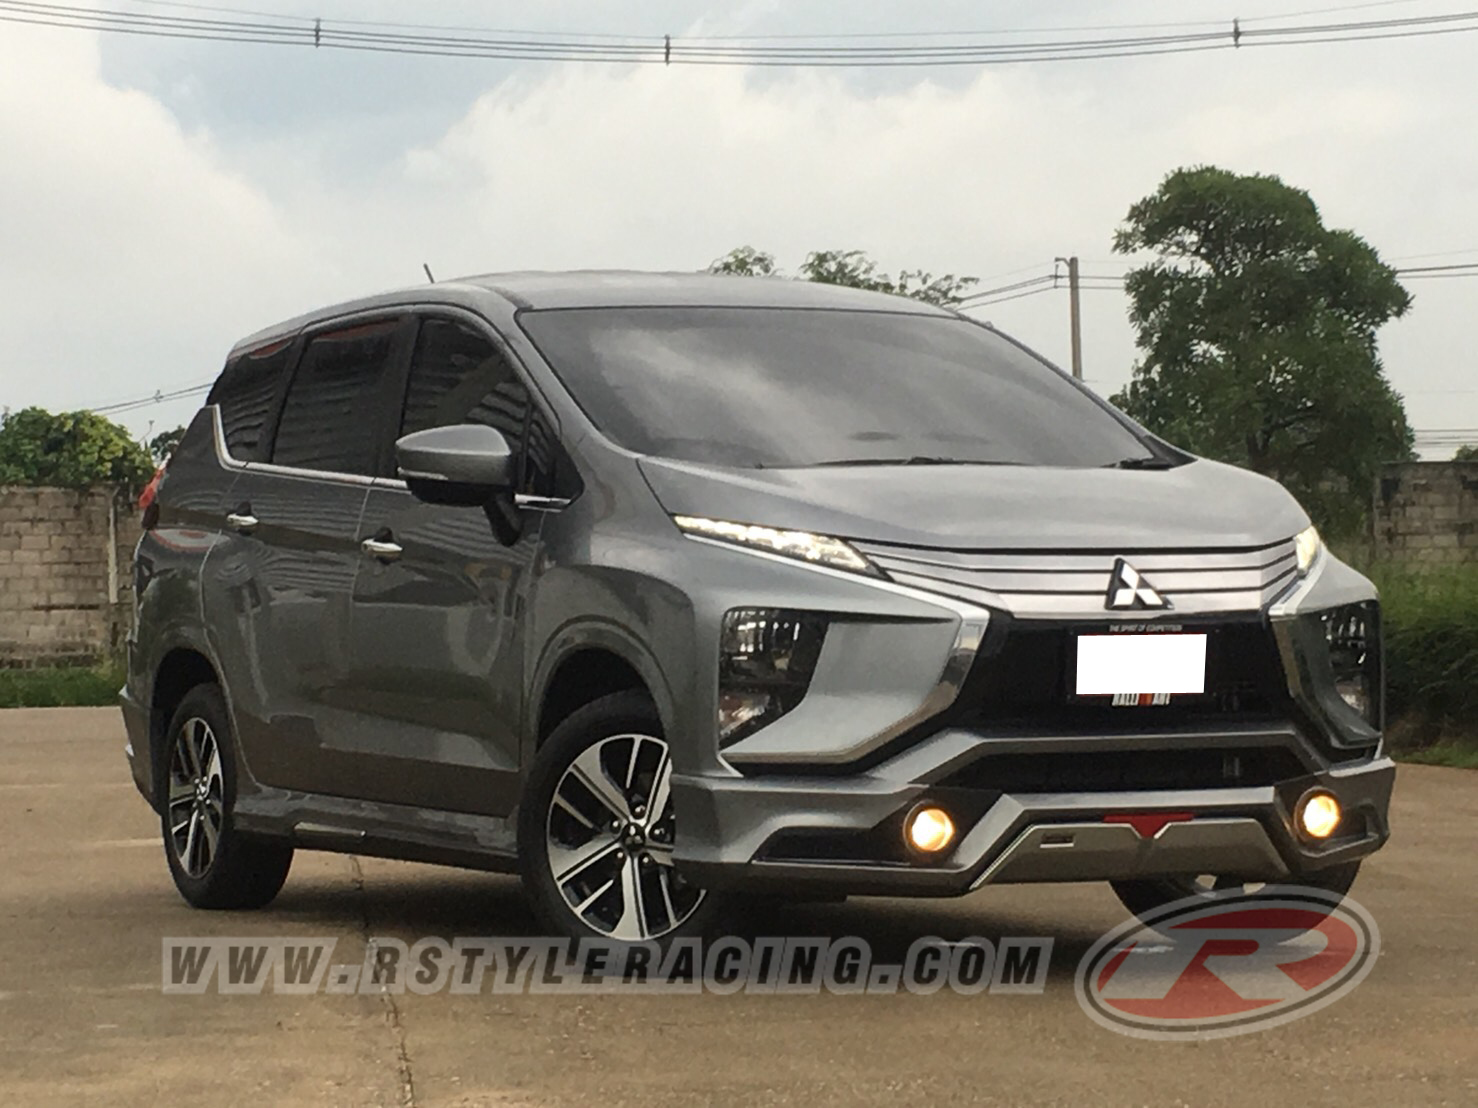 BODY  KIT  FOR MITSUBISHI XPANDER  SMART X STYLE WITH COLOR